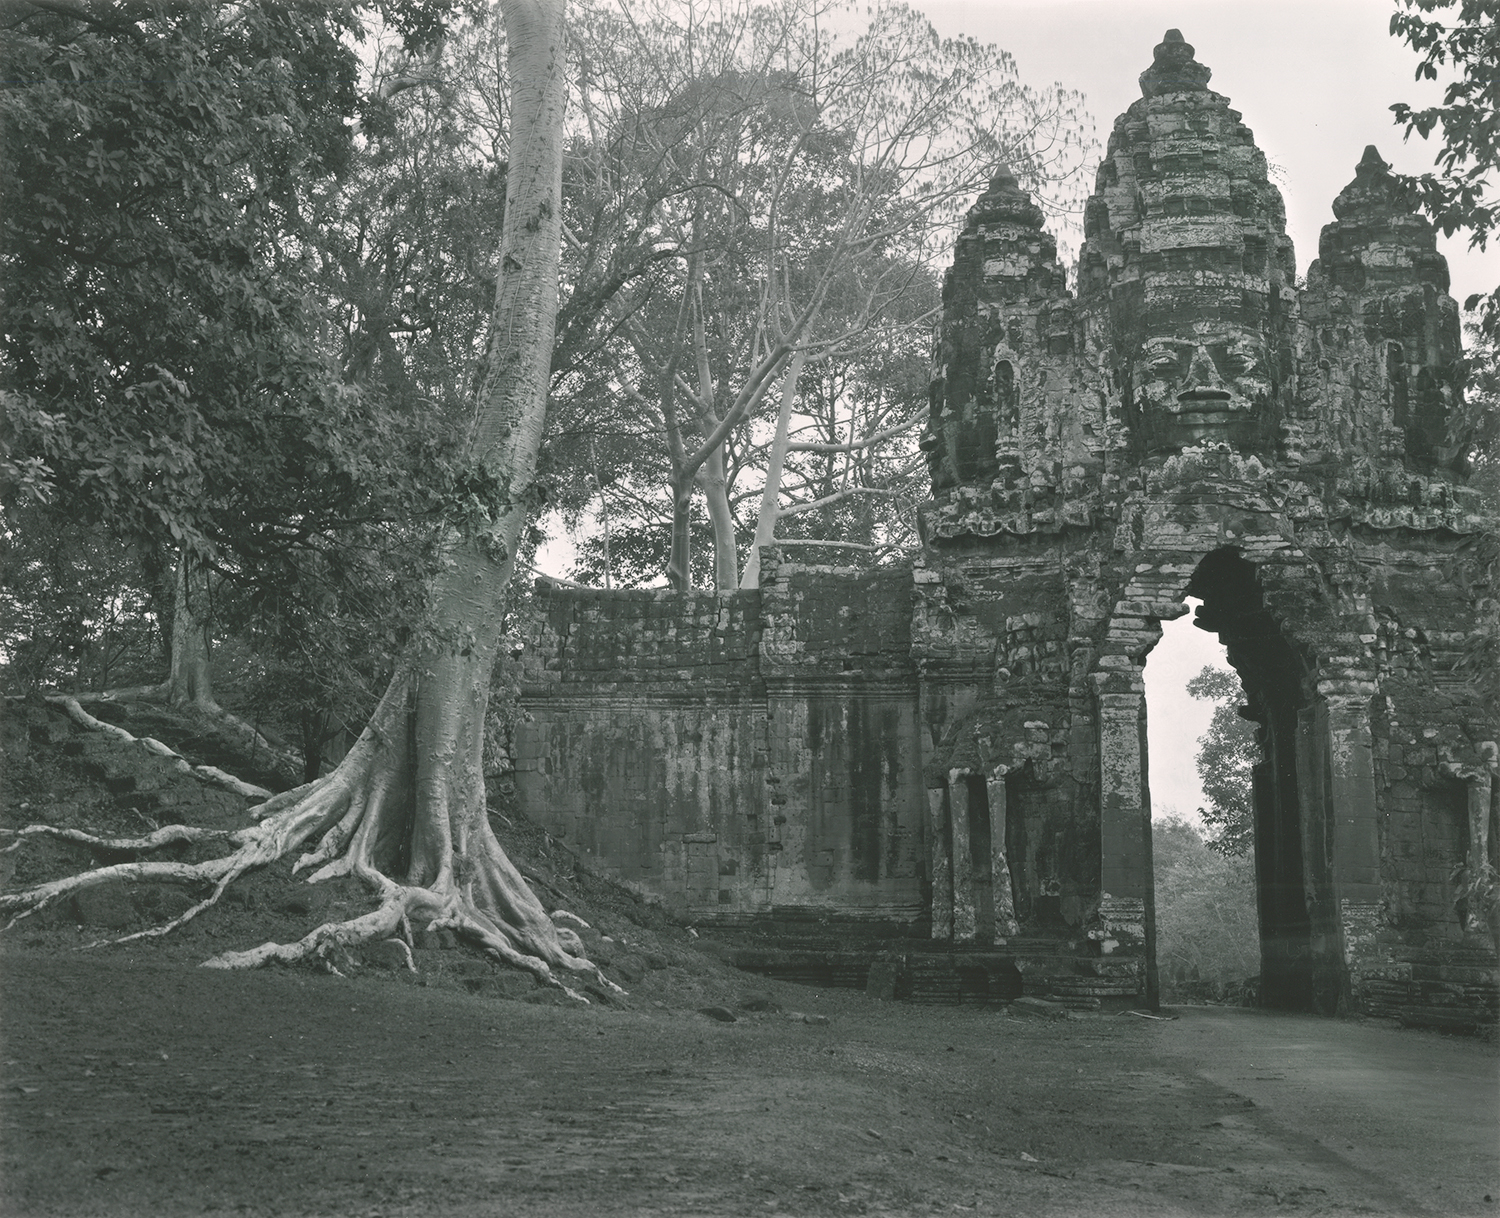 South Gate, Angkor Thom